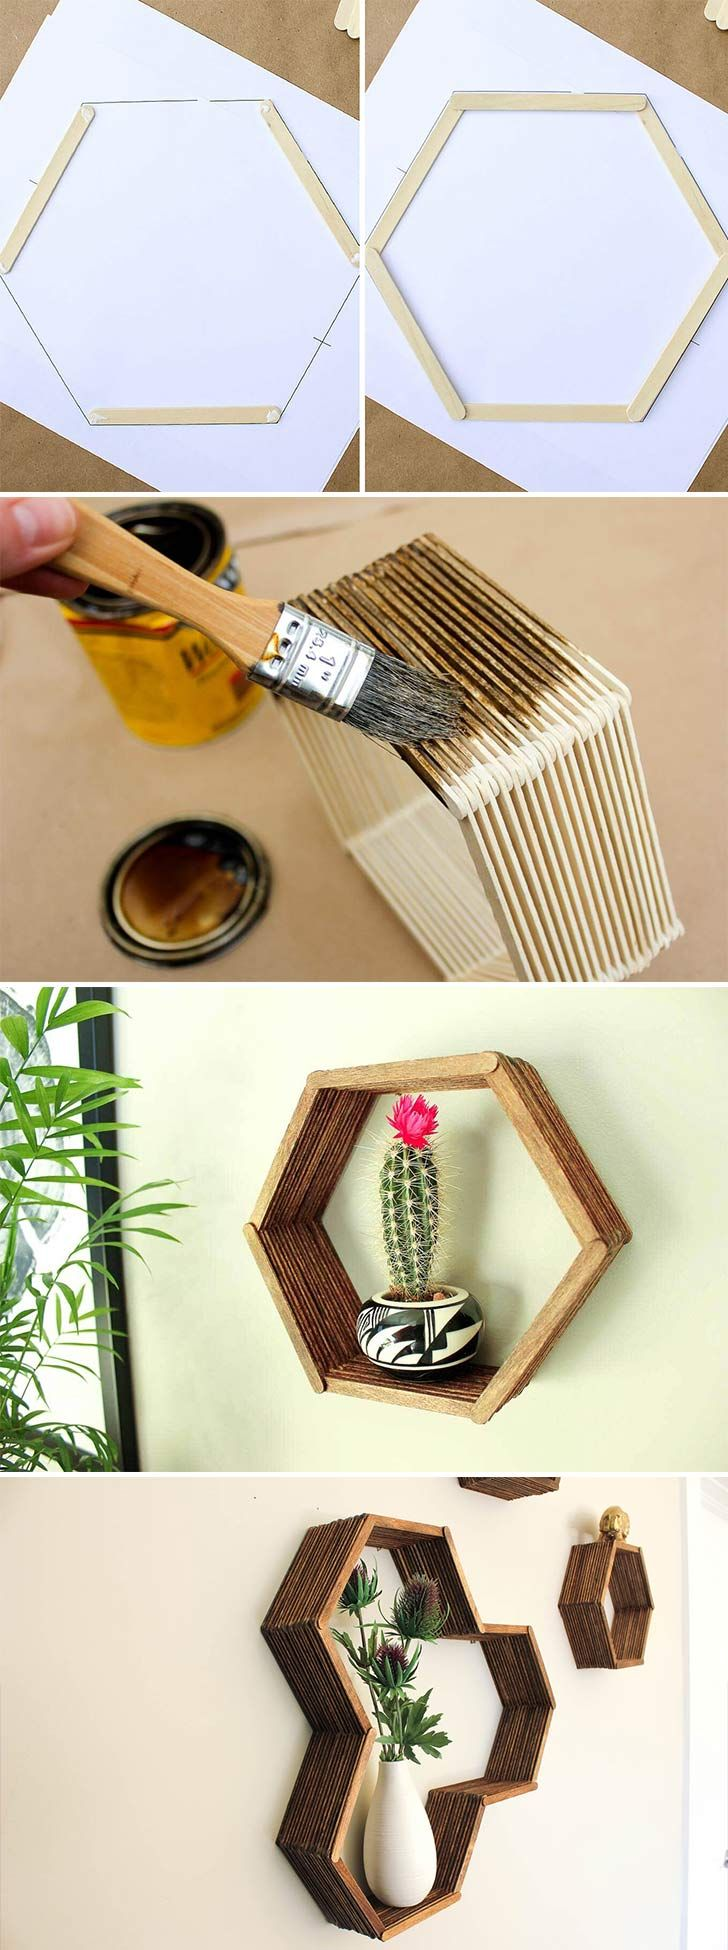 The 25 best popsicle stick crafts ideas on pinterest for Home decor 85032